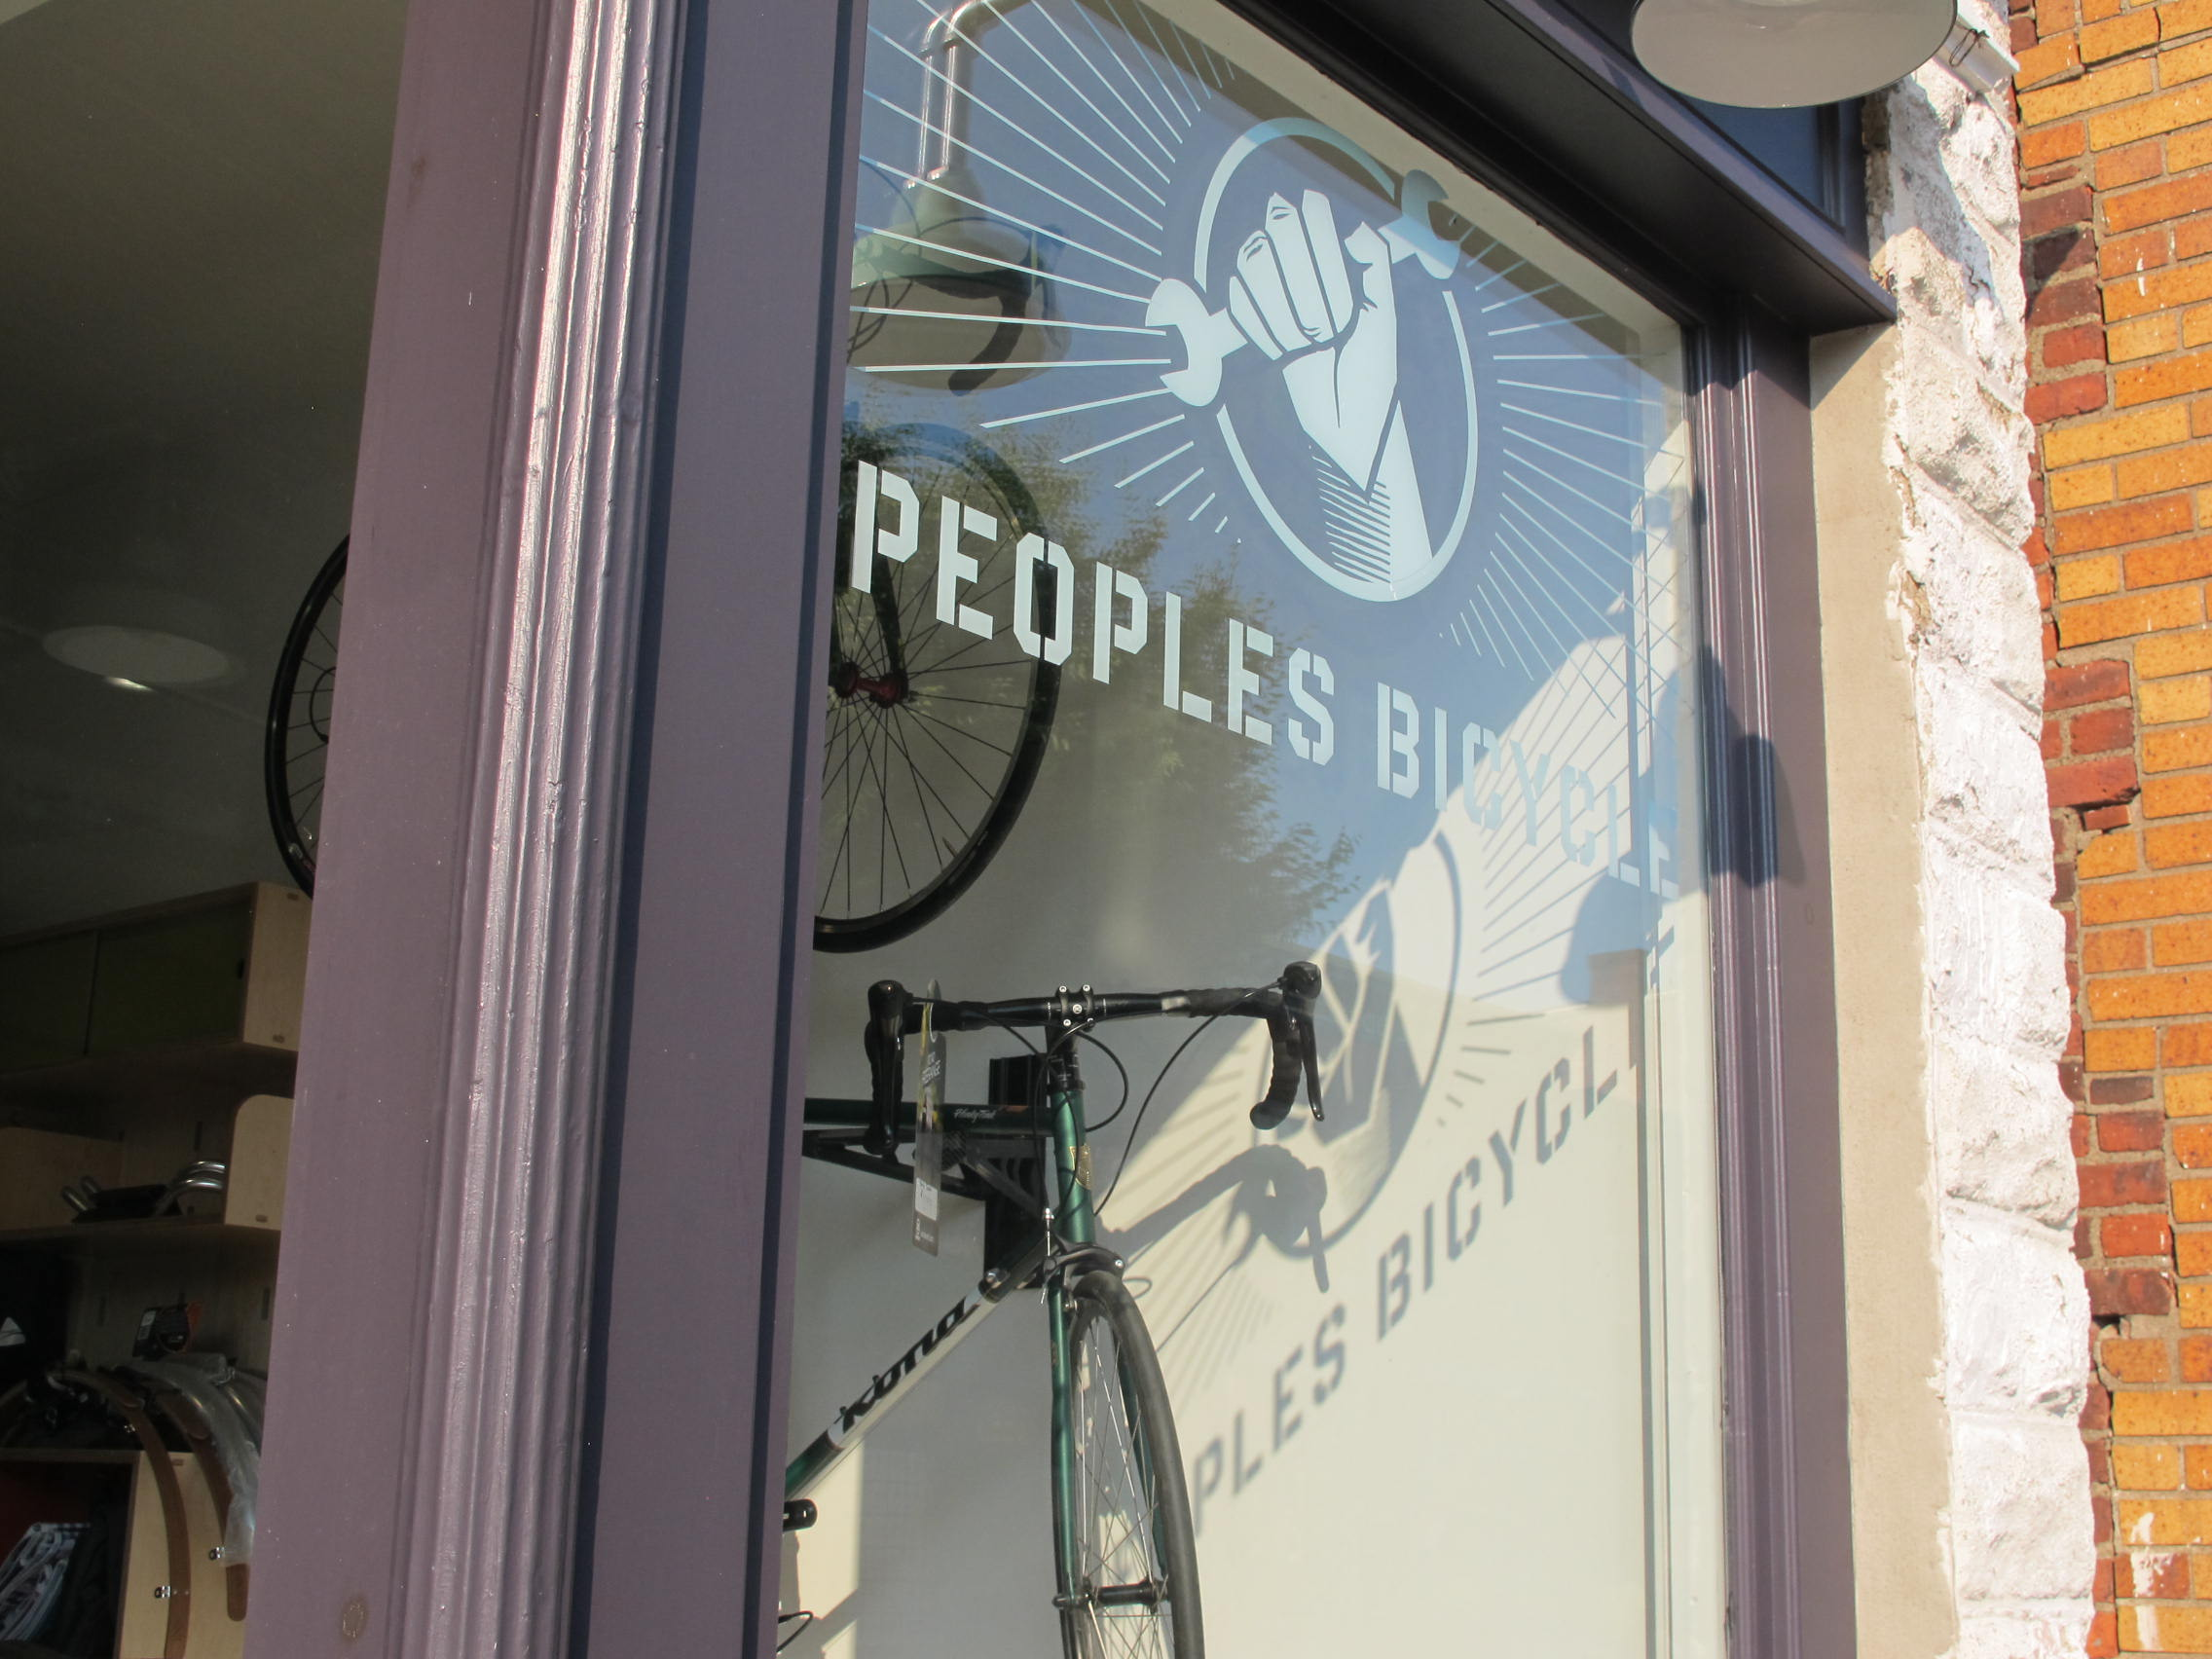 Peoples Bicycle Opens On Main Street